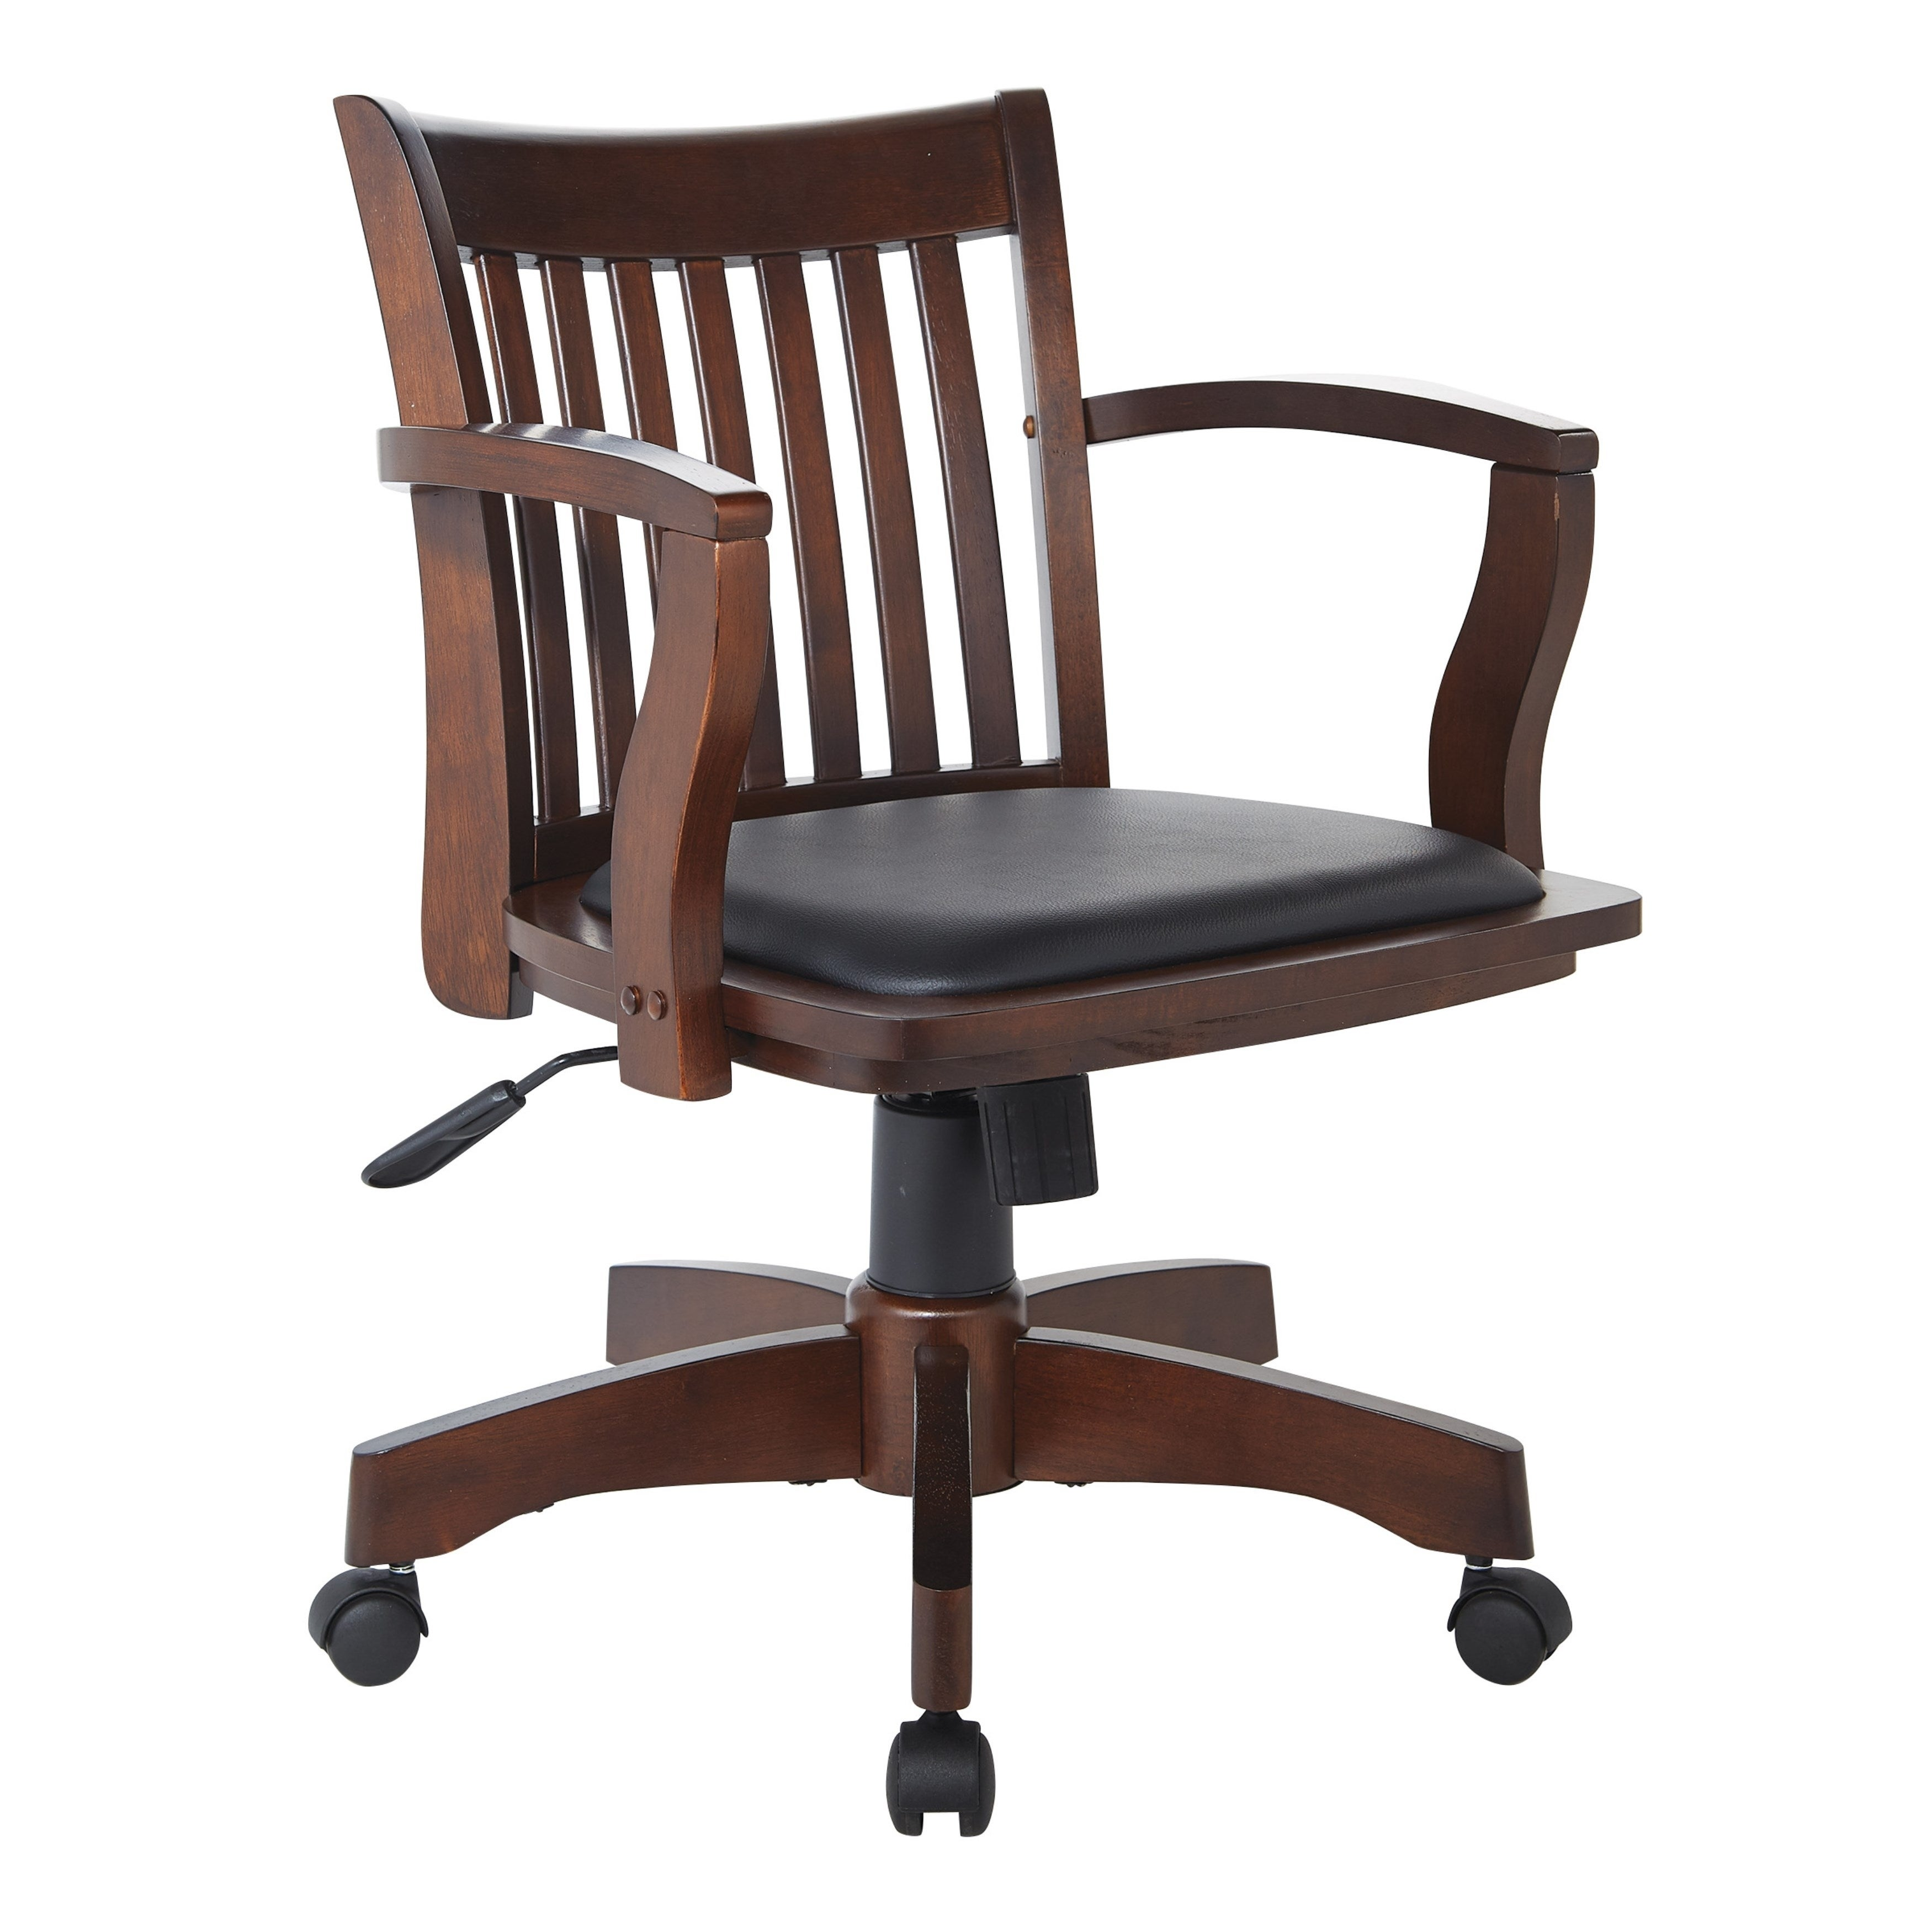 Attirant OSP Home Furnishings Deluxe Wood Bankers Chair With Vinyl Padded Seat In